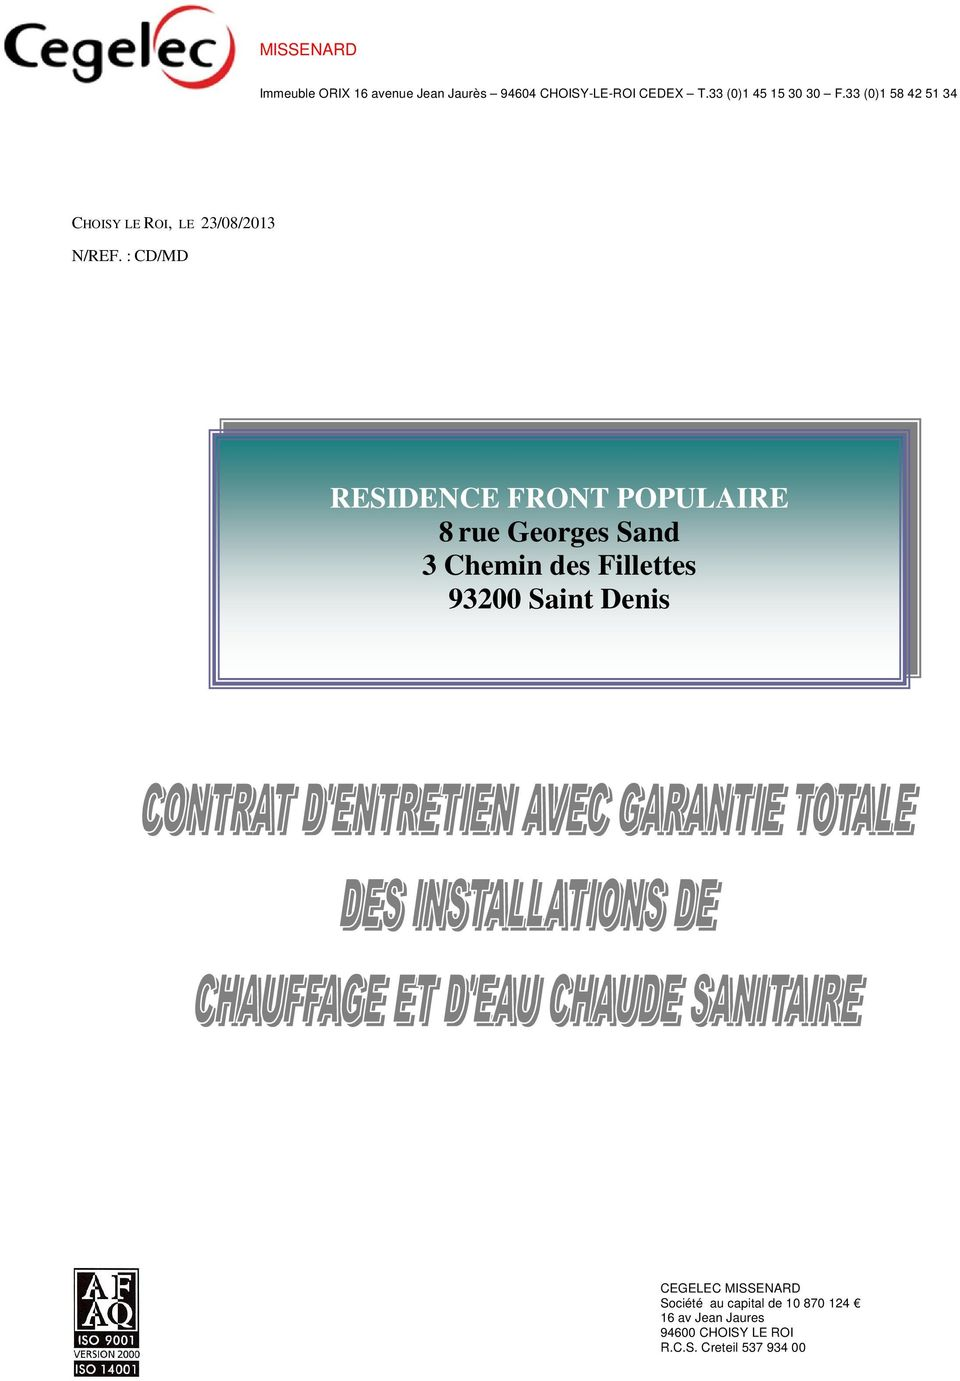 : RESIDENCE FRONT POPULAIRE 8 rue Georges Sand 3 Chemin des Fillettes 93200 Saint